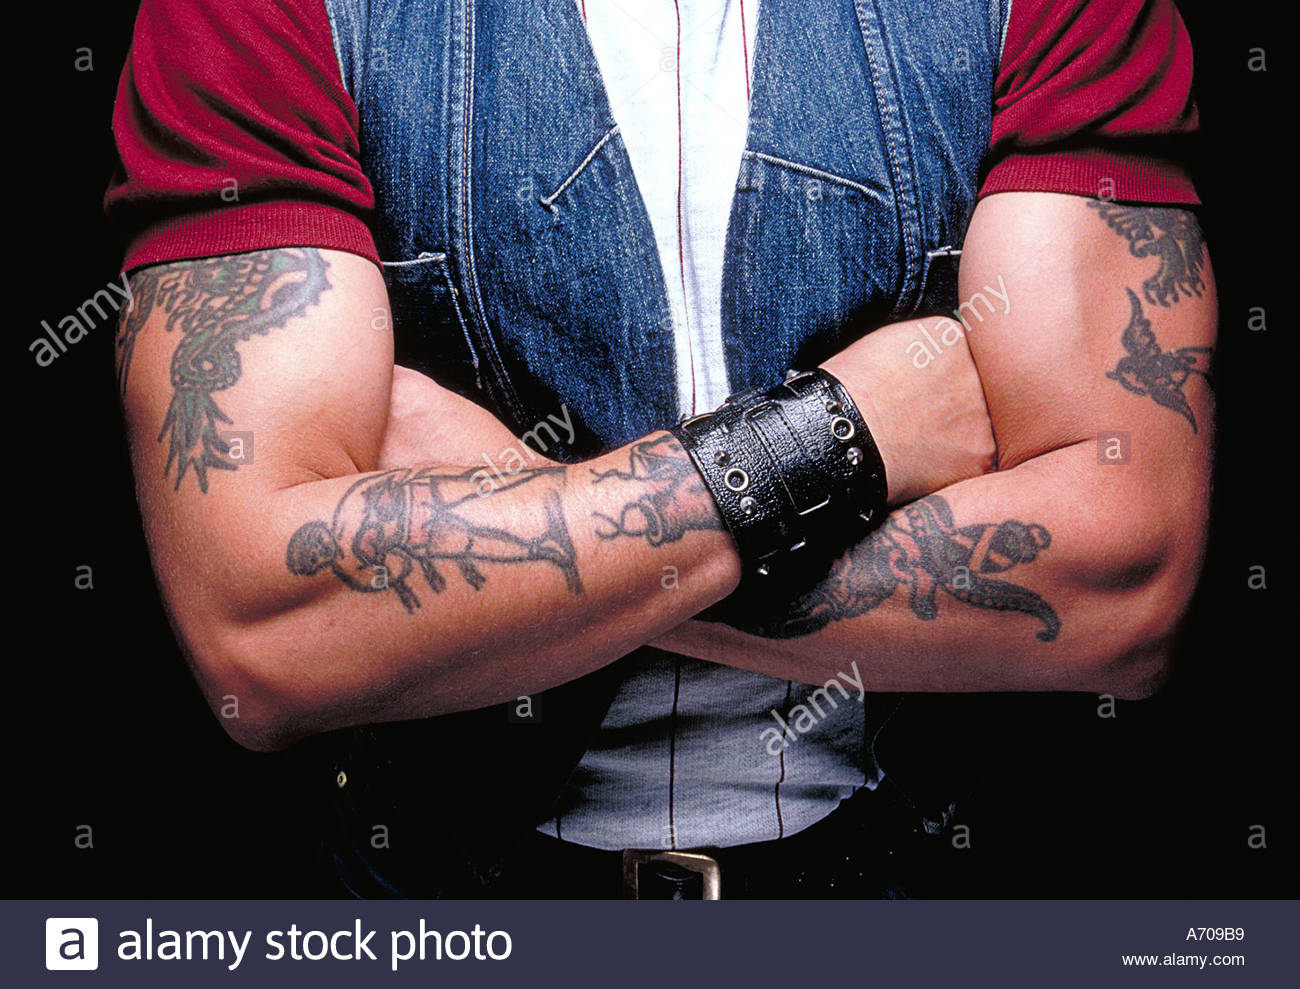 Man with tattoos on his folded arms - Stock Image